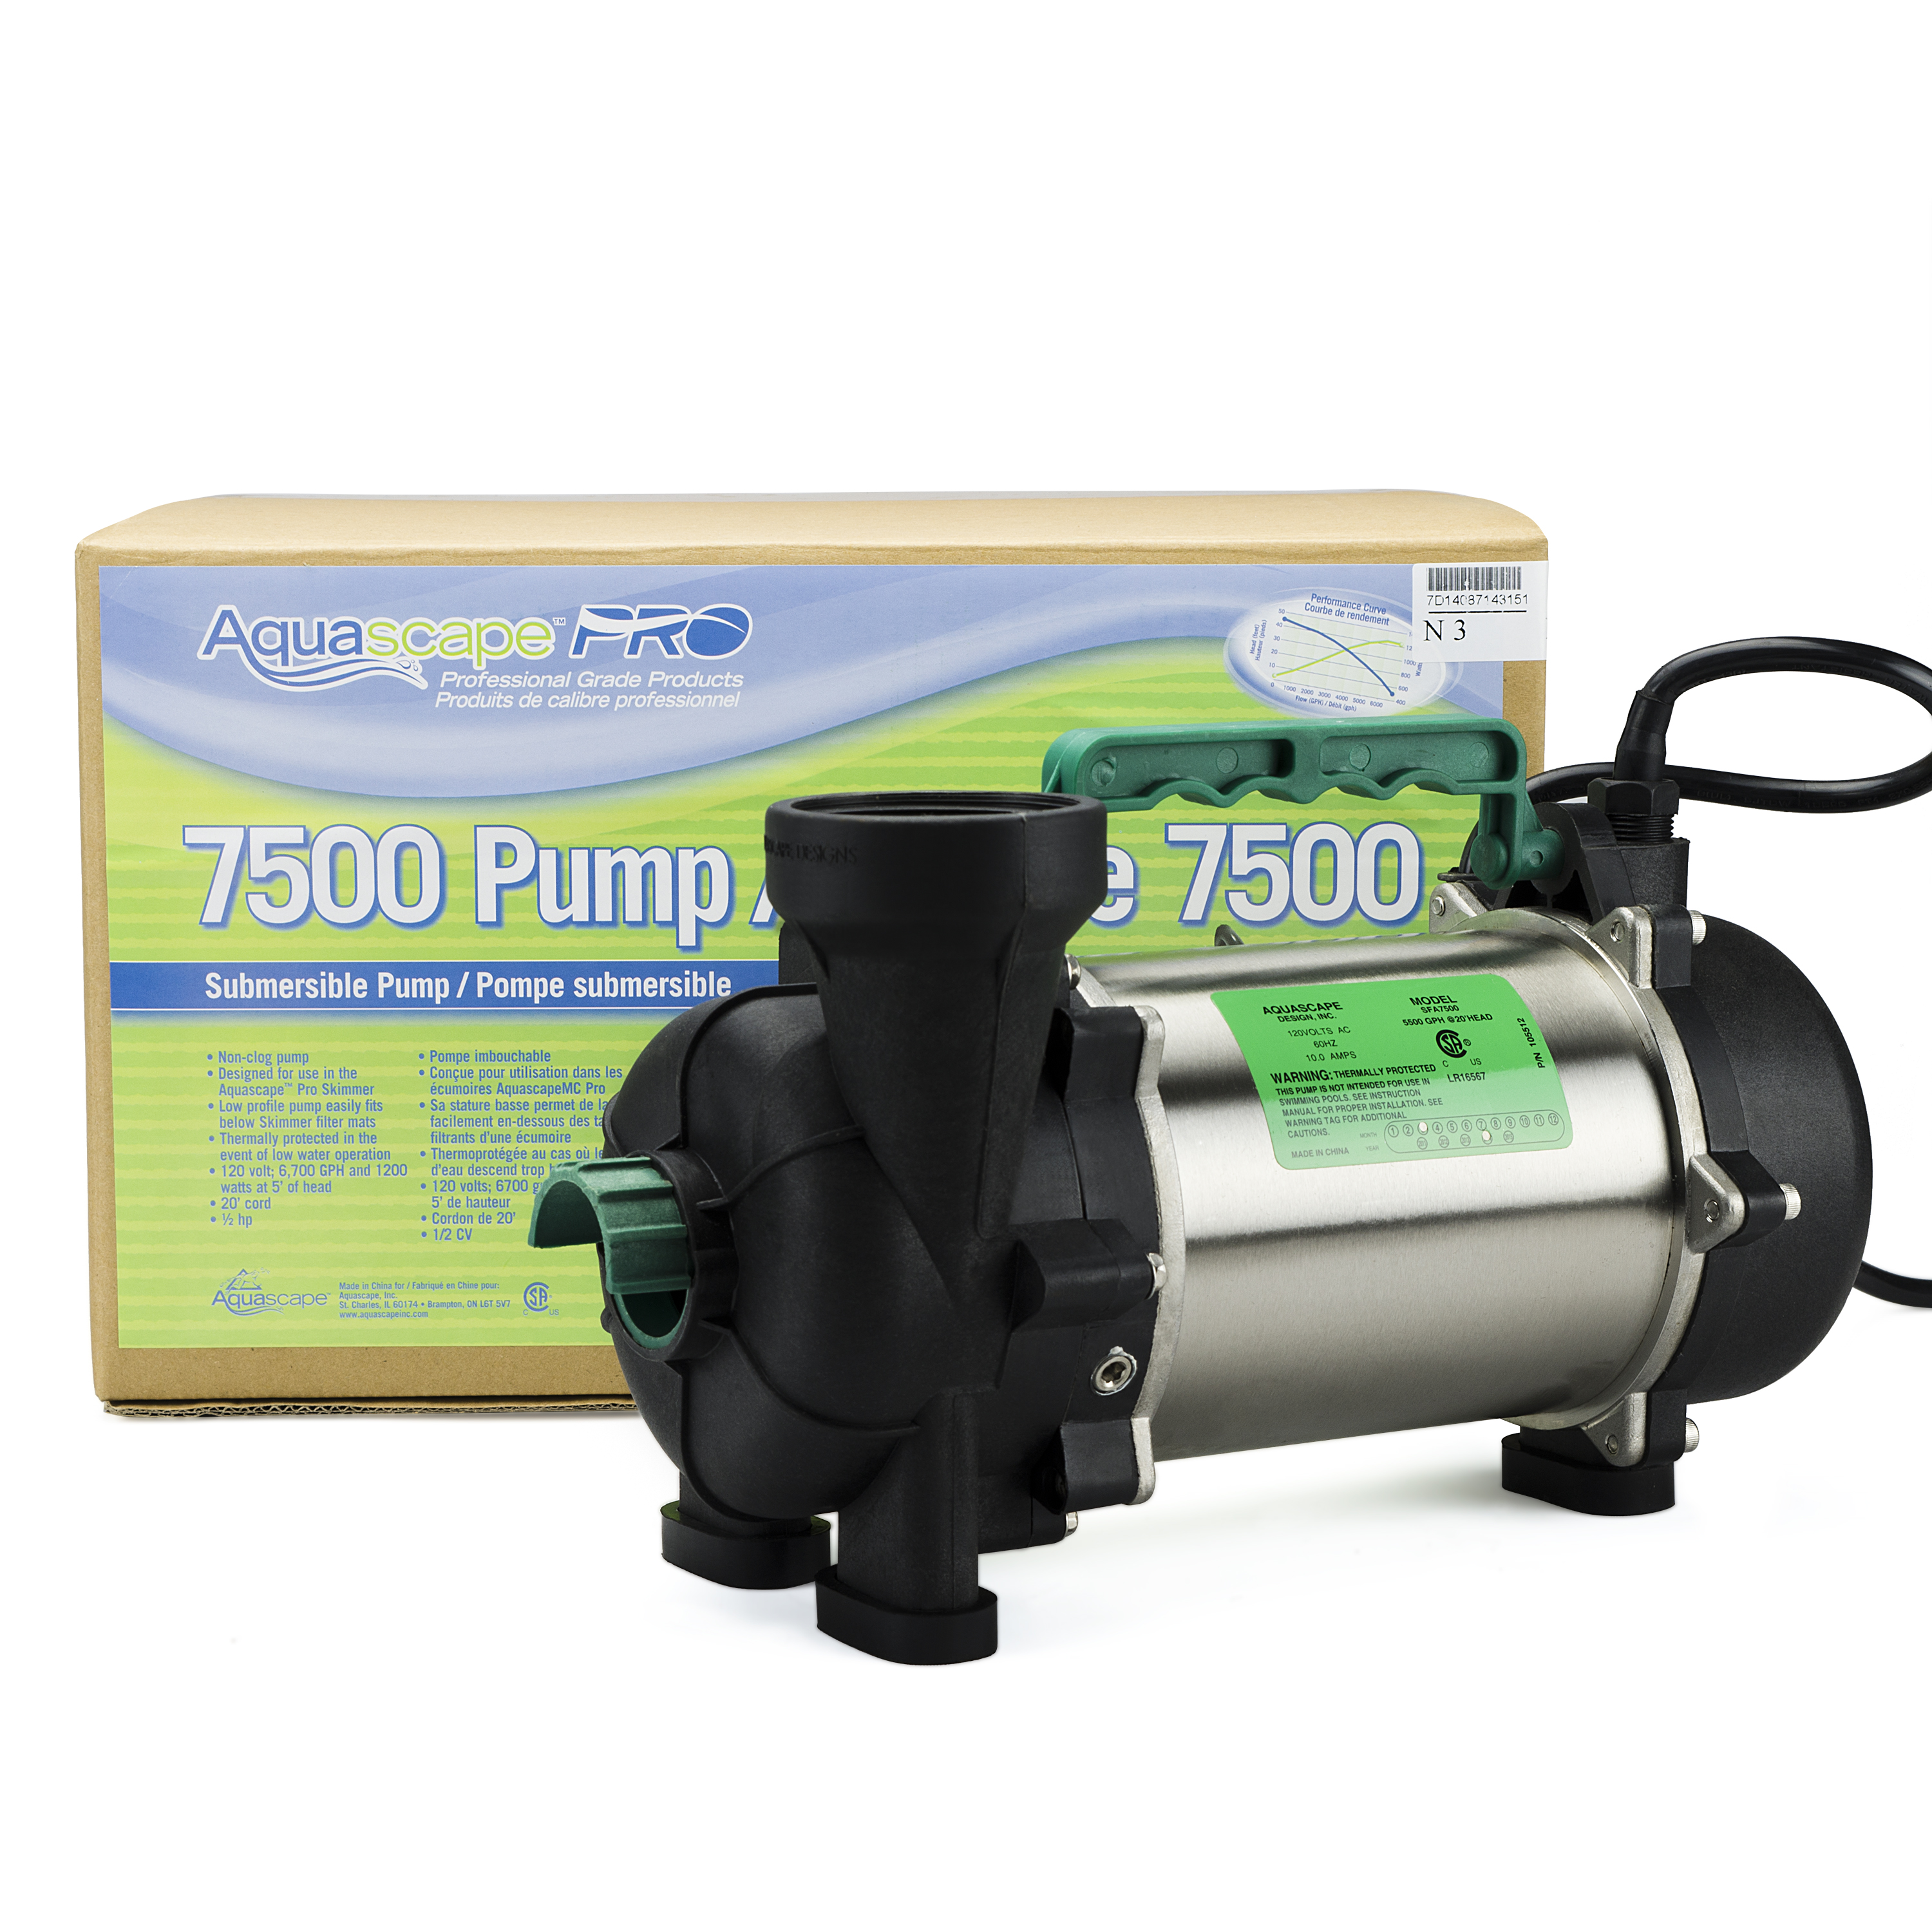 AquascapePRO® Pond Pumps - Aquascapes